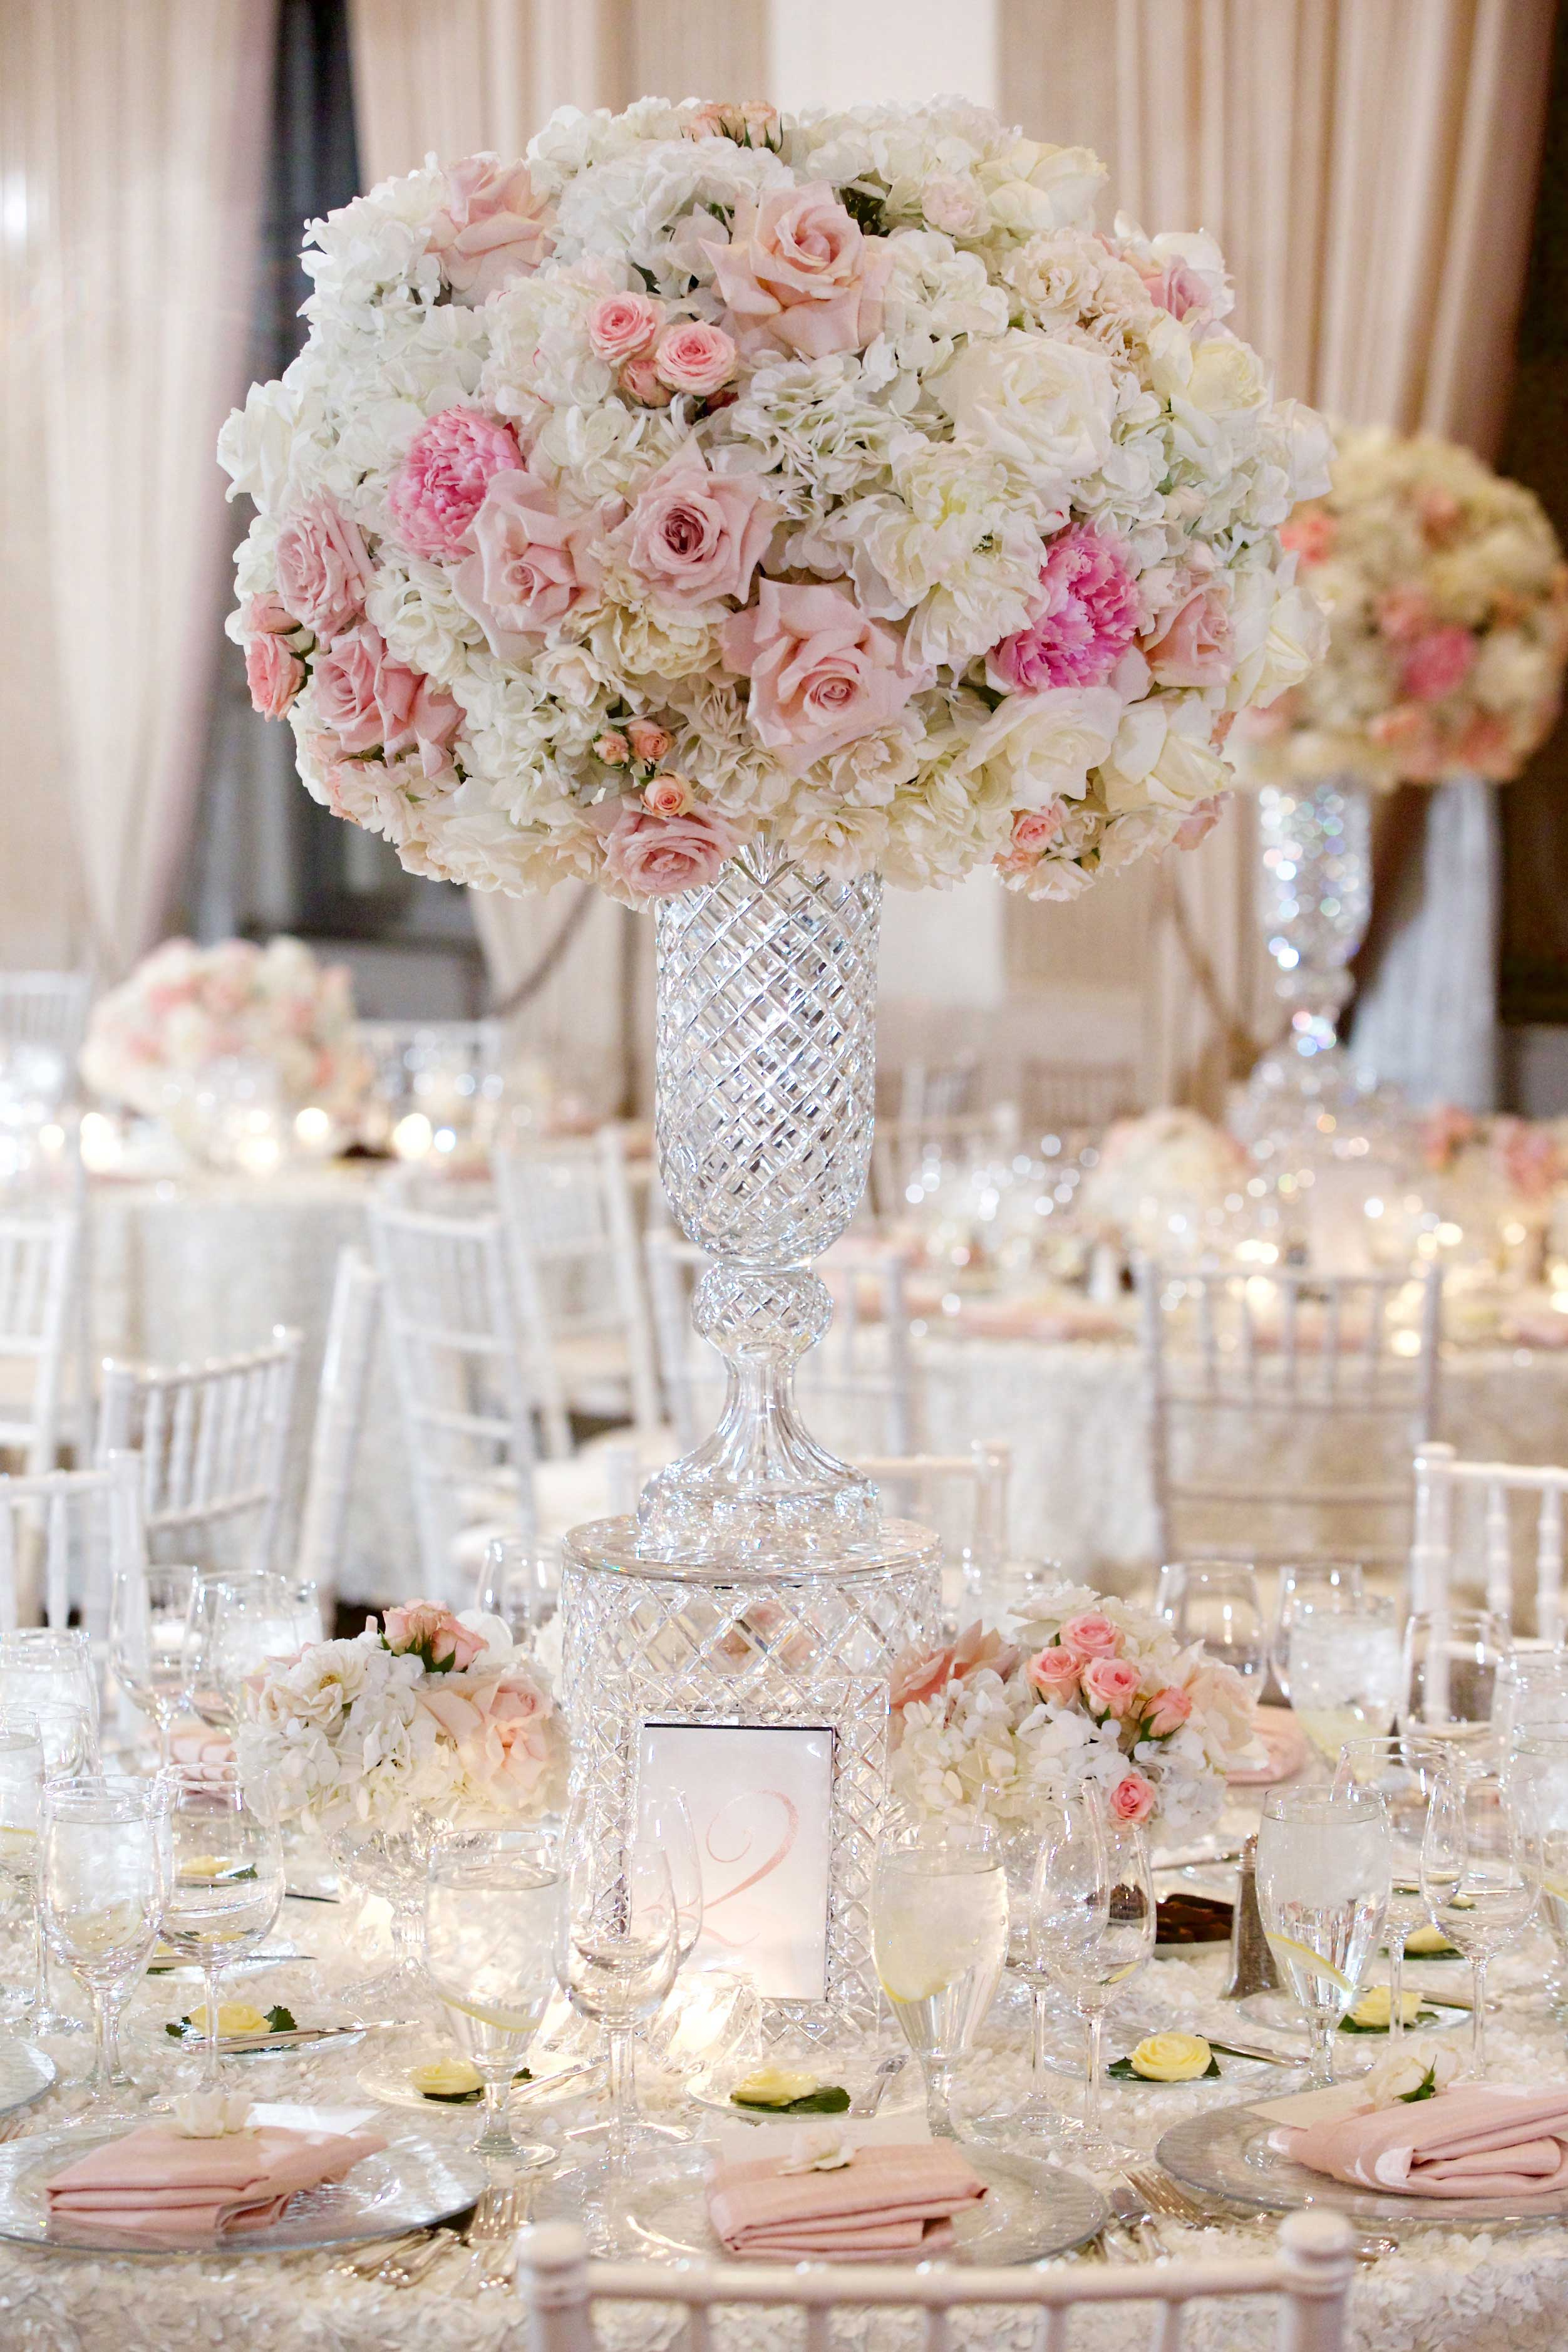 White and pink flower centerpiece in tall crystal riser vase Inside Weddings winter 2017 issue